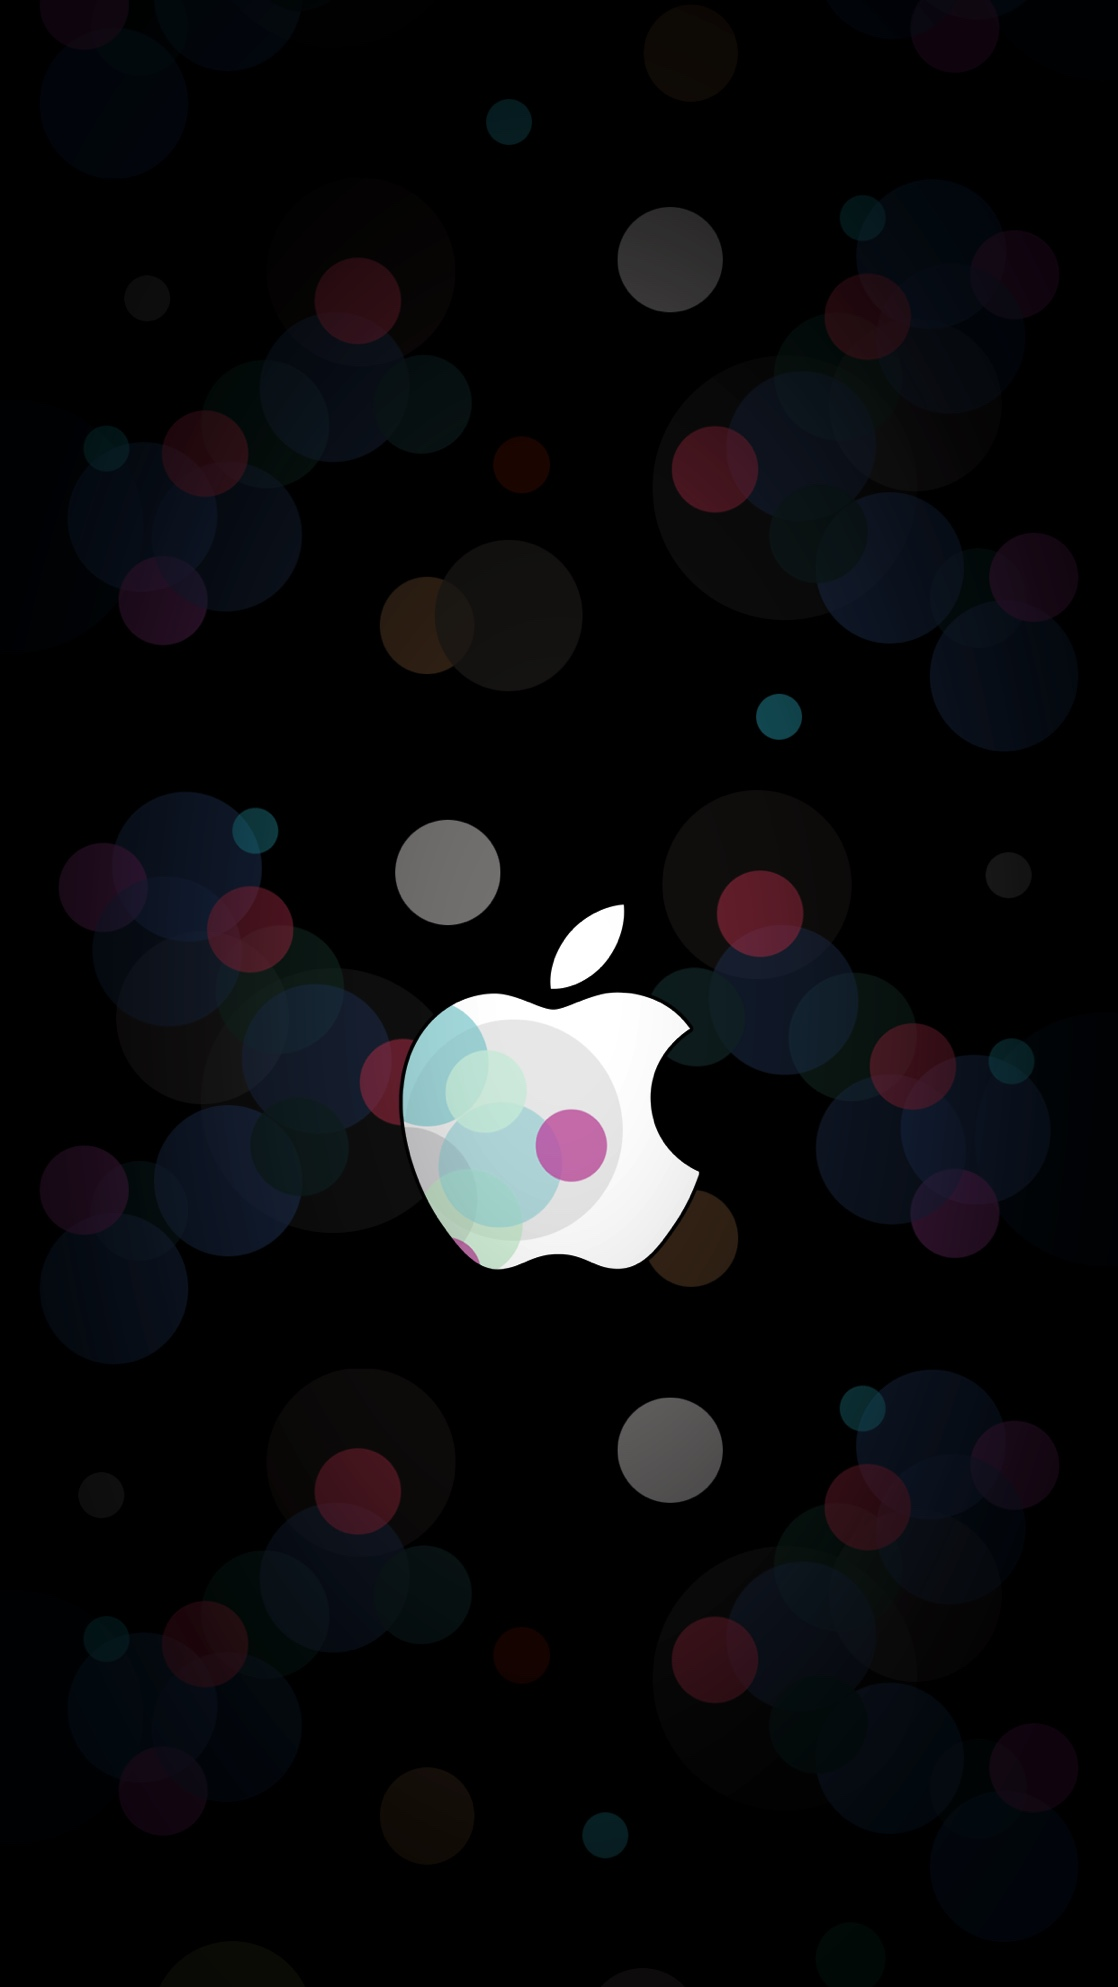 Apple-September-7-event-wallpaper-ar7-inspired-logo